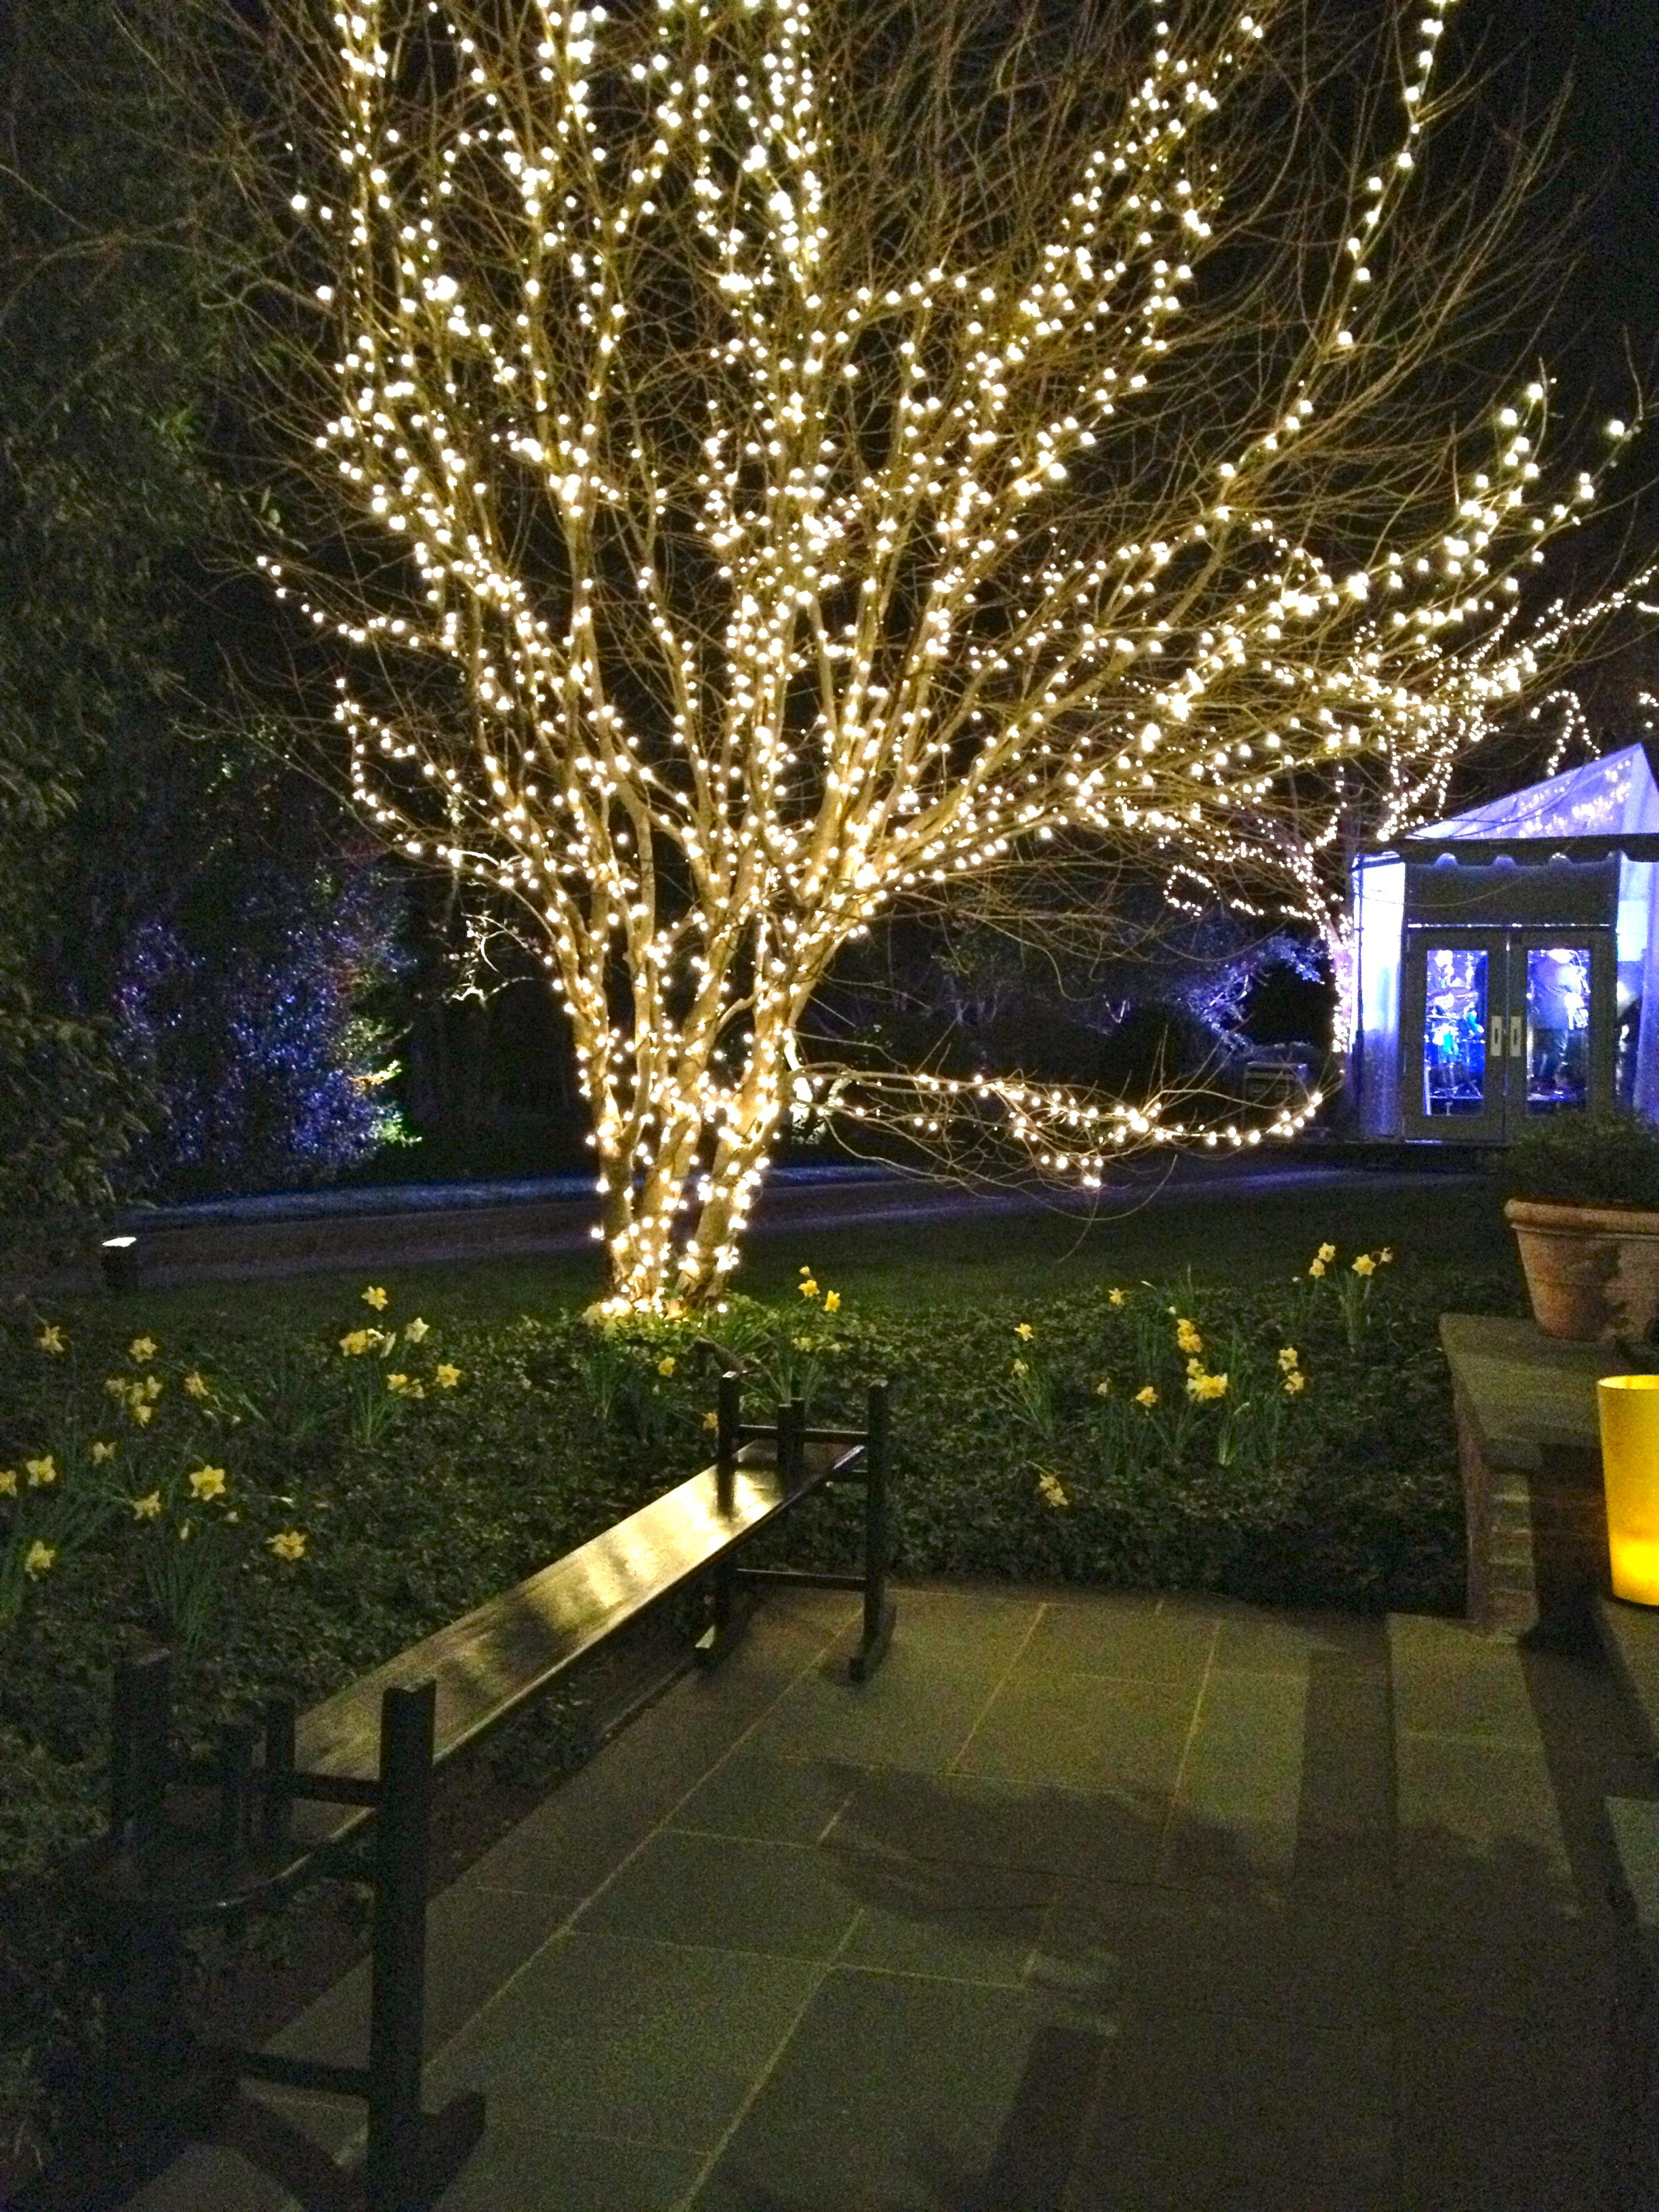 The Welcoming House and the fabulous party | Outdoor tree ... on outdoor lighting for patio, beach party ideas, mason jar outdoor party ideas, outdoor party tubs, cheap outdoor party ideas, outdoor post mount lighting, adult outdoor party ideas, outdoor party themes ideas, back yard graduation ideas, outdoor party lights, outdoor house party, outdoor string lights, cool rope light ideas, outdoor landscape lighting, outdoor party ideas for drunks, outdoor party landscape ideas, outdoor karaoke ideas, outdoor graduation party ideas, outdoor decorating ideas, outdoor party balloon decoration ideas,